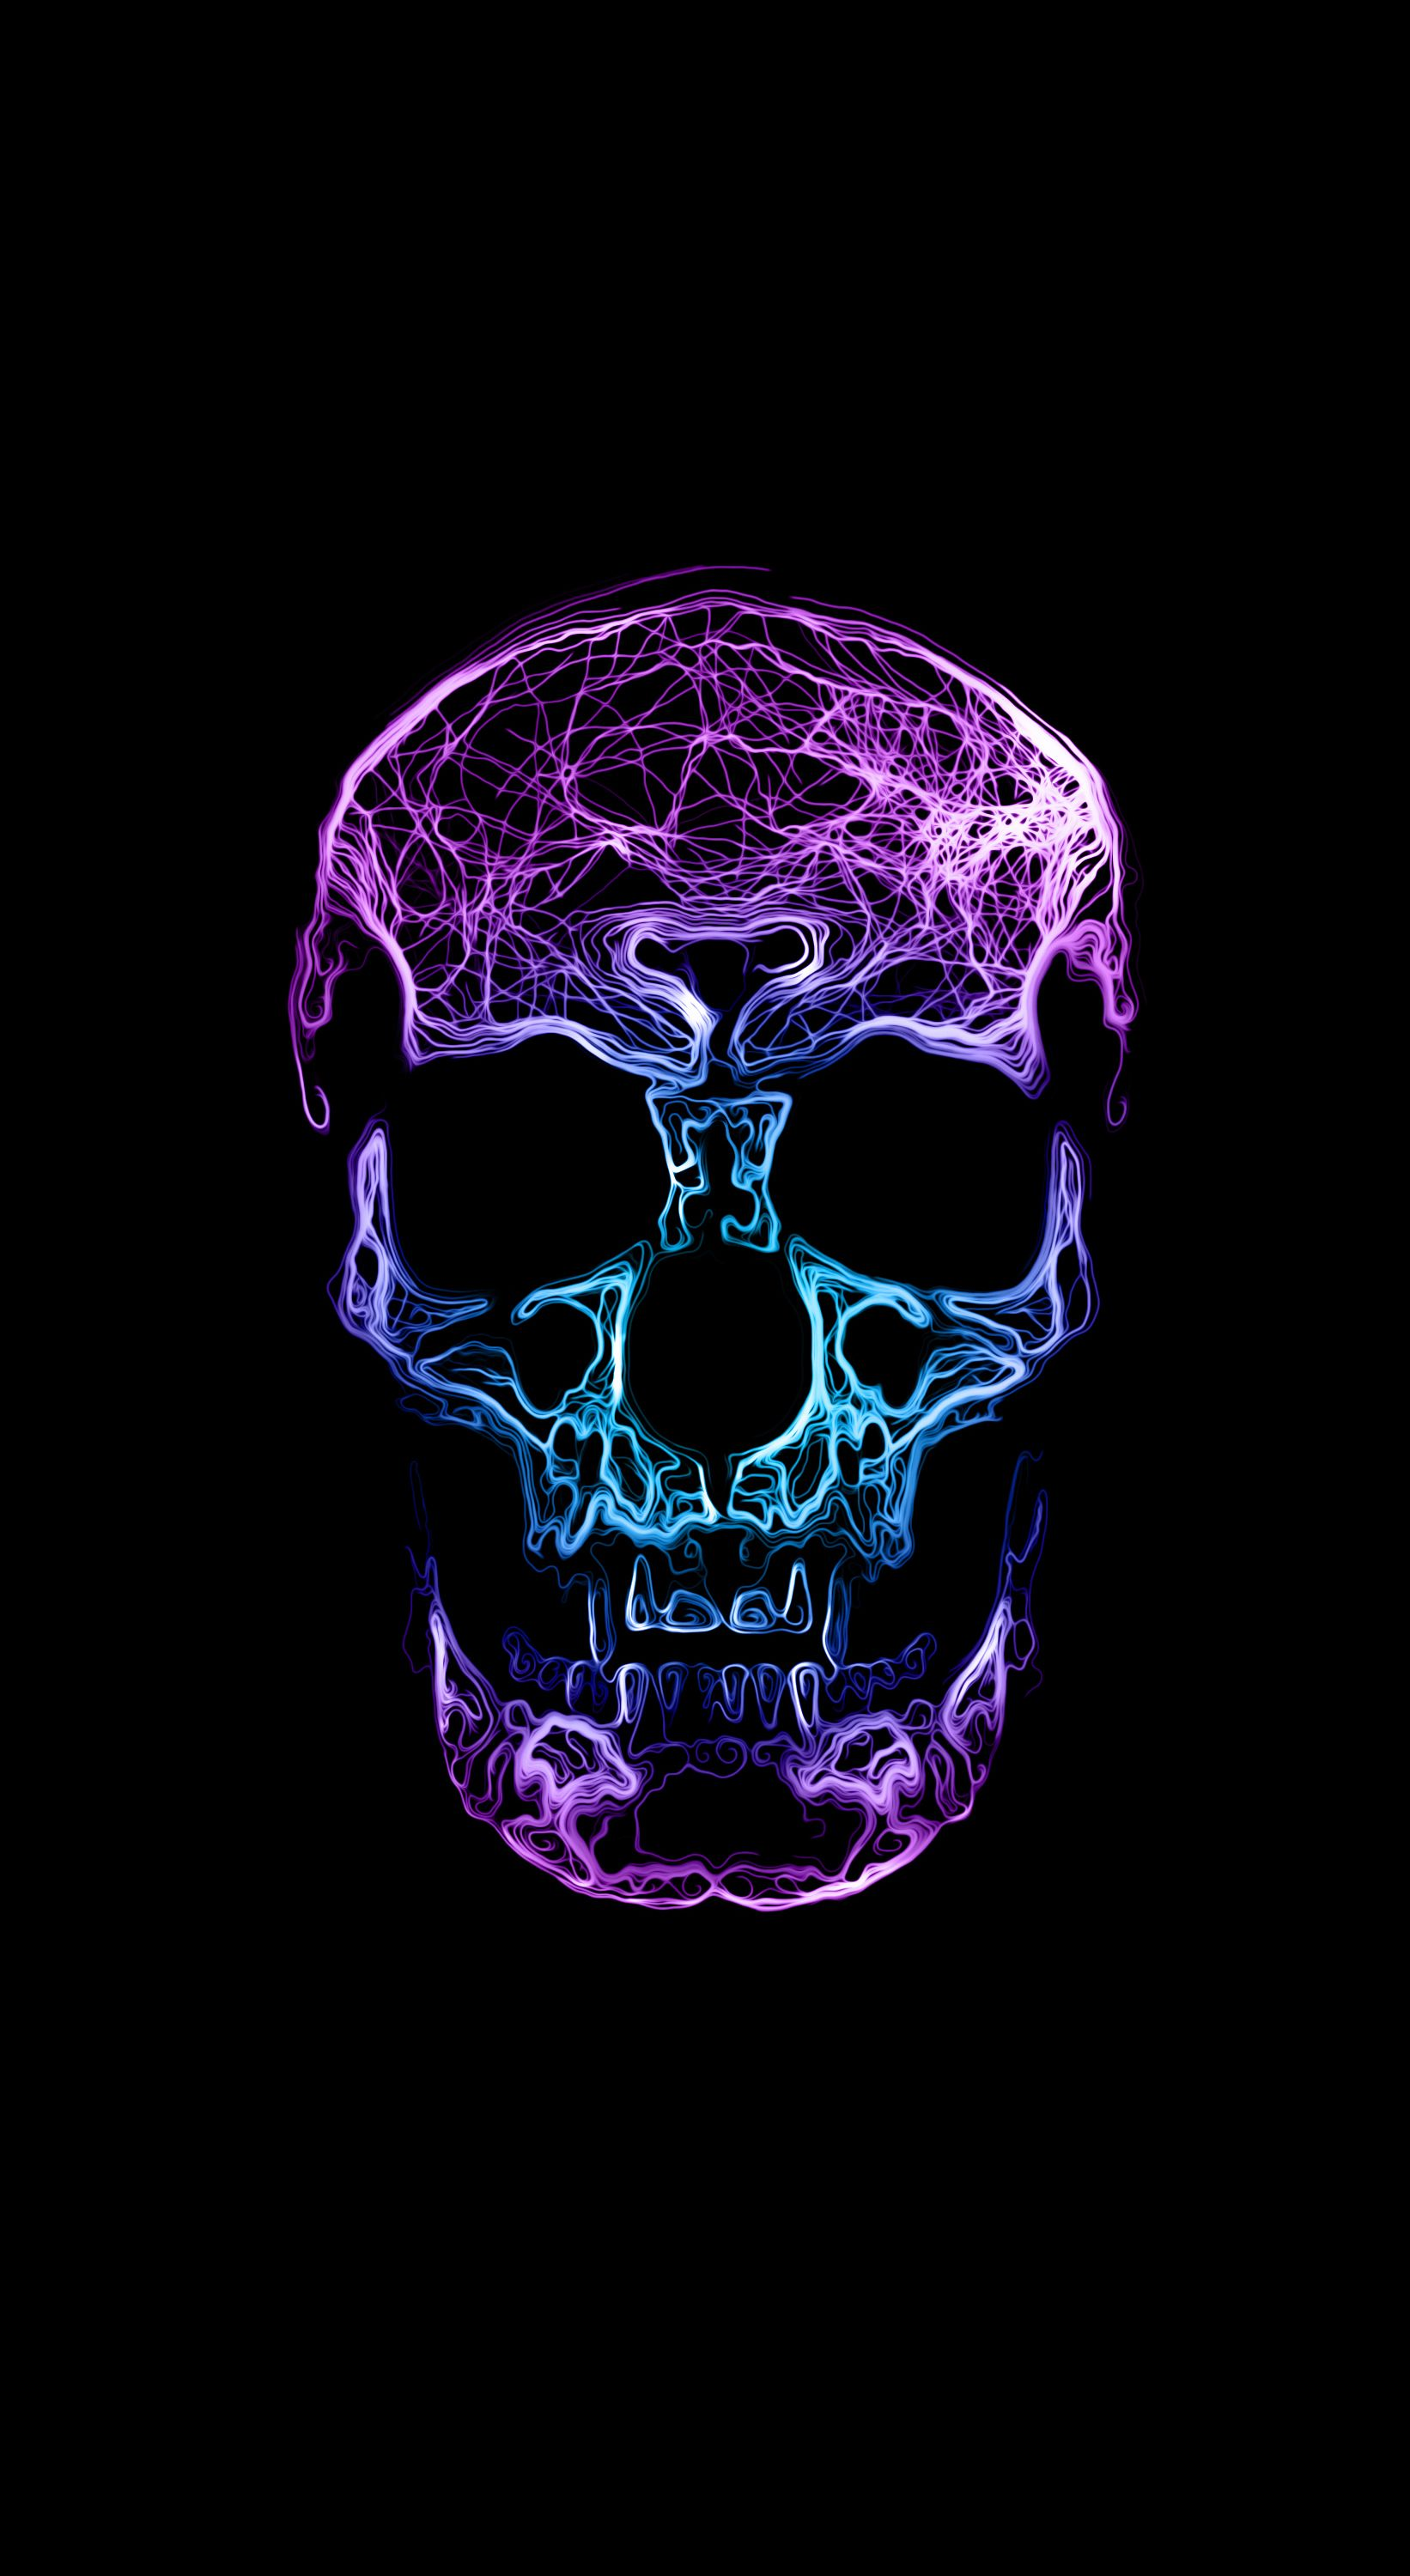 Skull Wallpaper Hd For Mobile 7